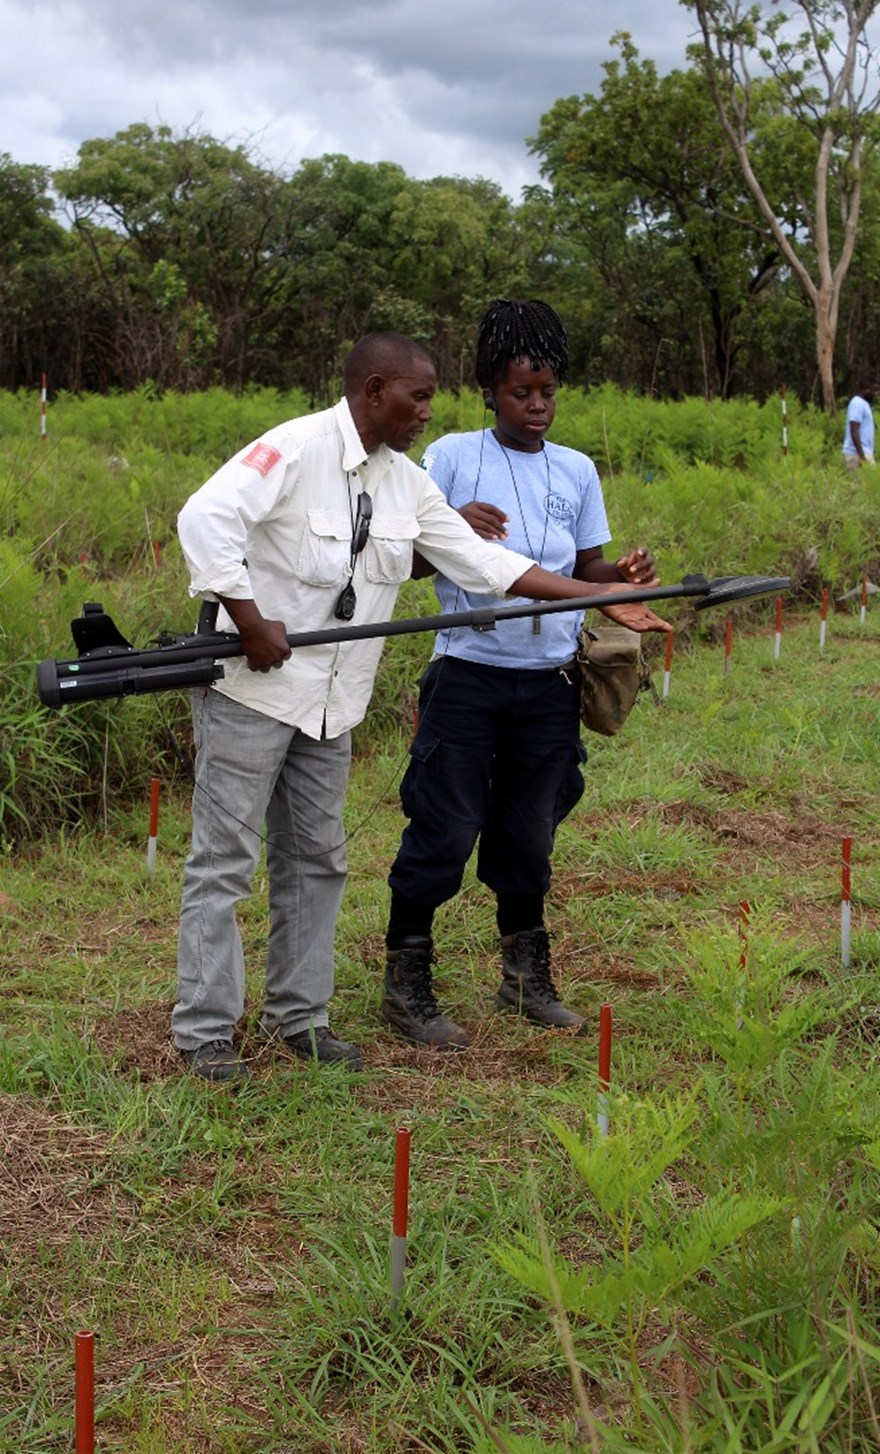 Deminer Rosa Cachiangui receives instruction from HALO Angola's Training Officer.